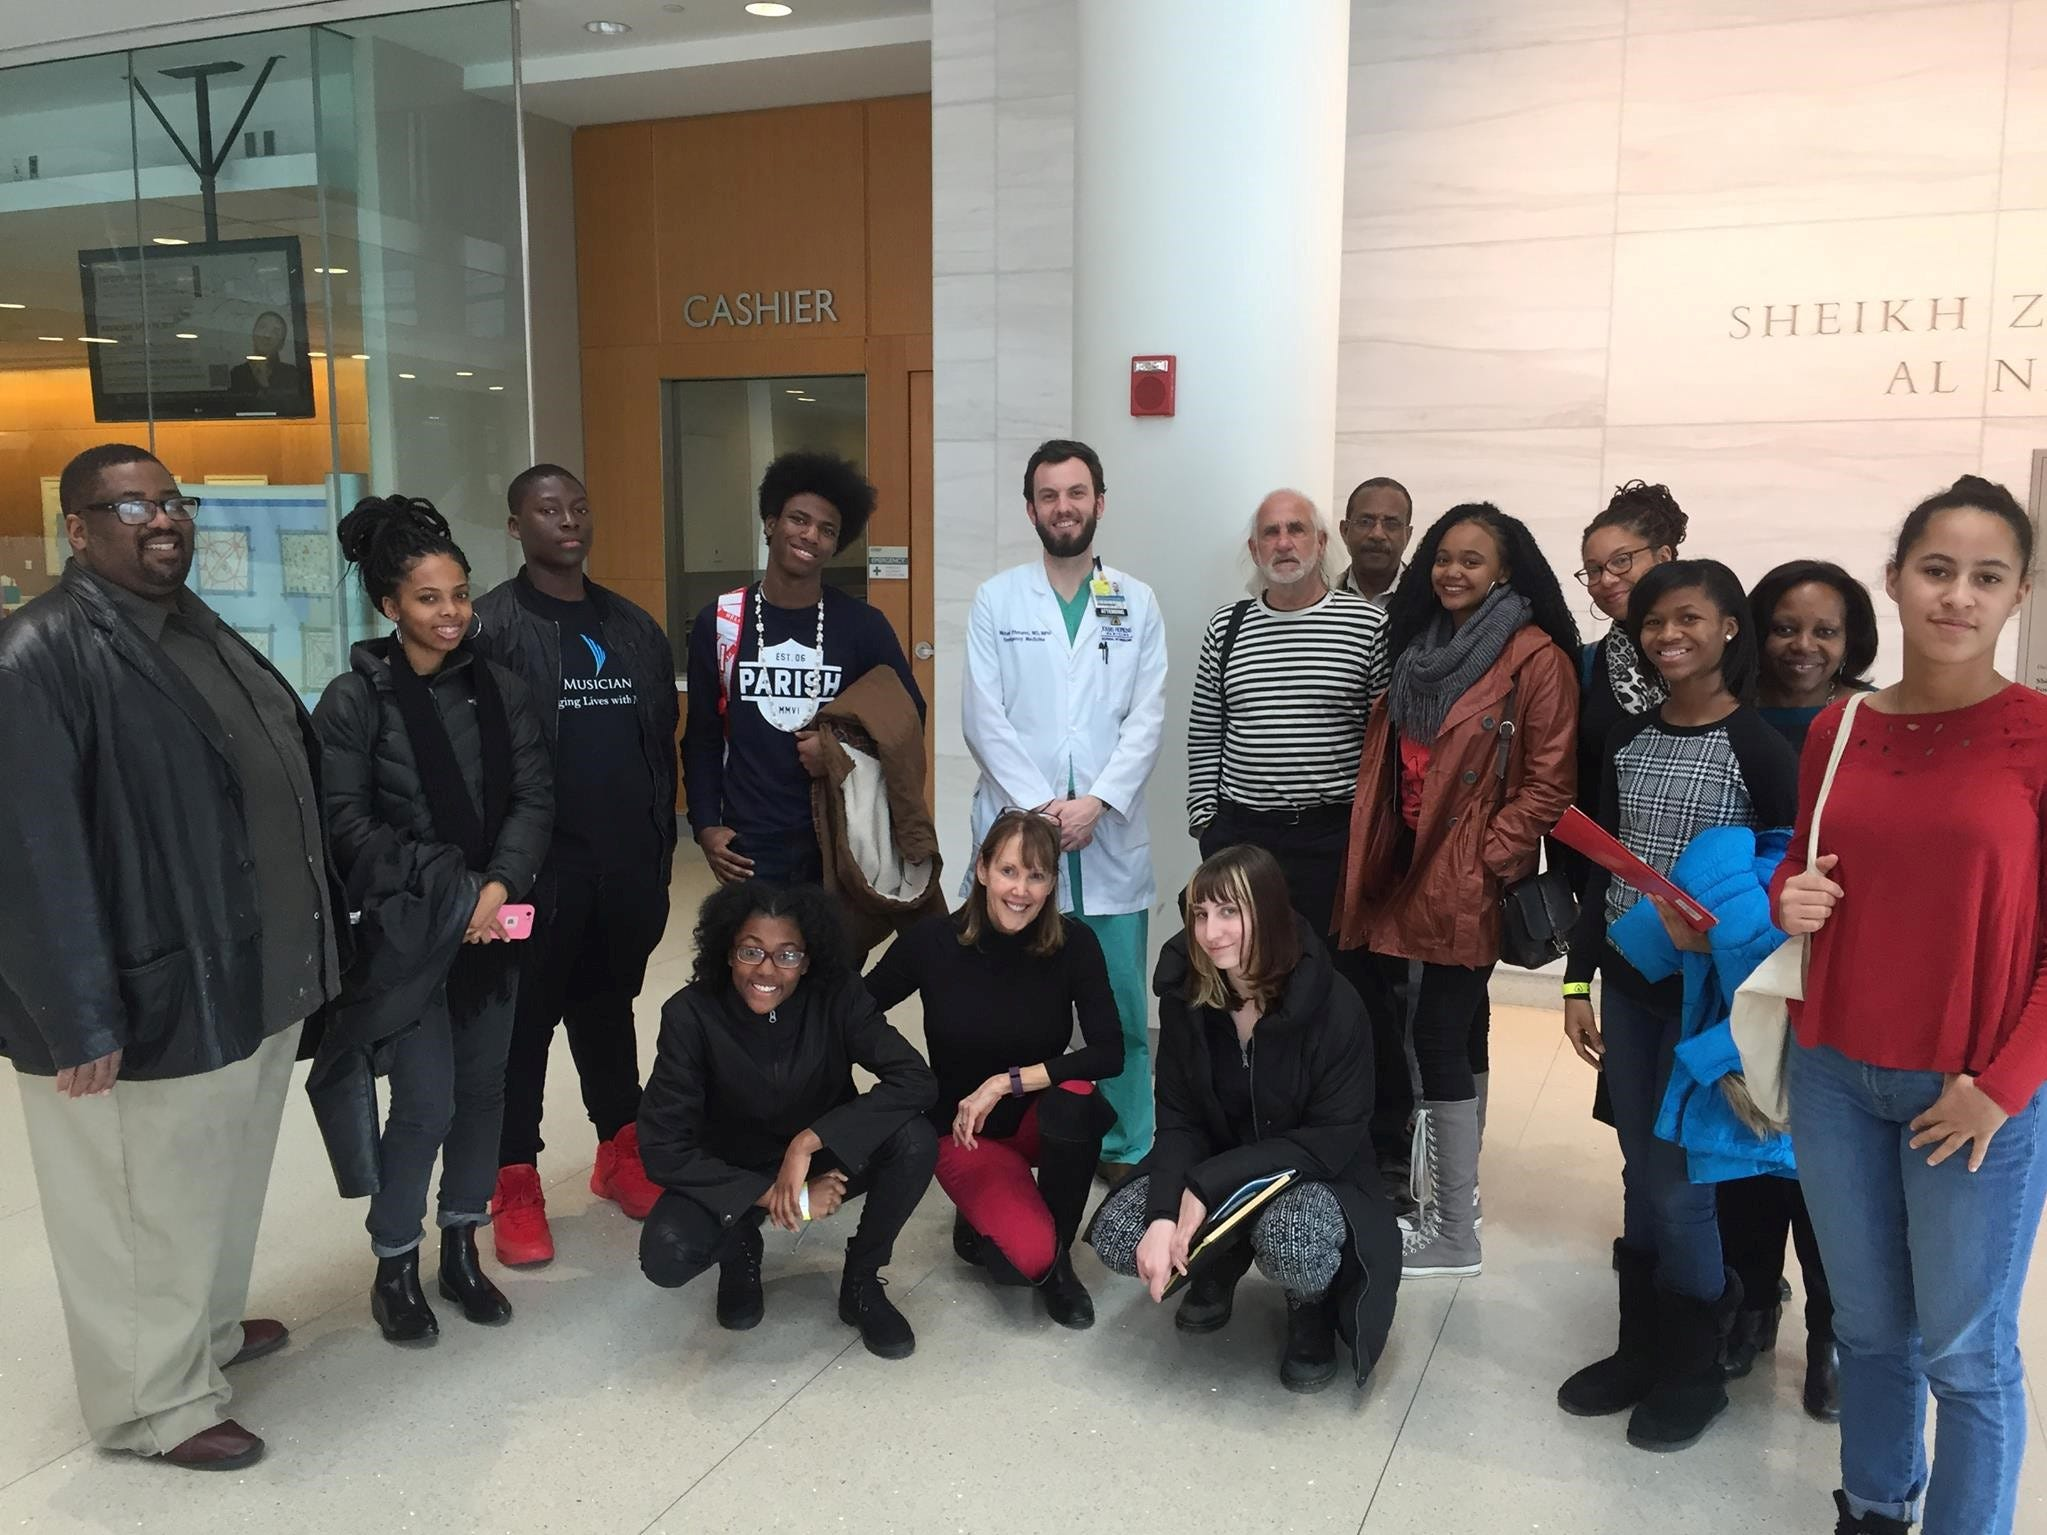 Washington and Baltimore high school students from the Urban Health Media Project - which USA TODAY's Jayne O'Donnell co-founded - are shown during a visit to discuss violence and trauma at Johns Hopkins University's hospital in March 2017.  Reggie Payne, who is to the right of physician Michael Ehmann (in lab coat), now insists group members maintain a close connection by sharing details of their previous week.